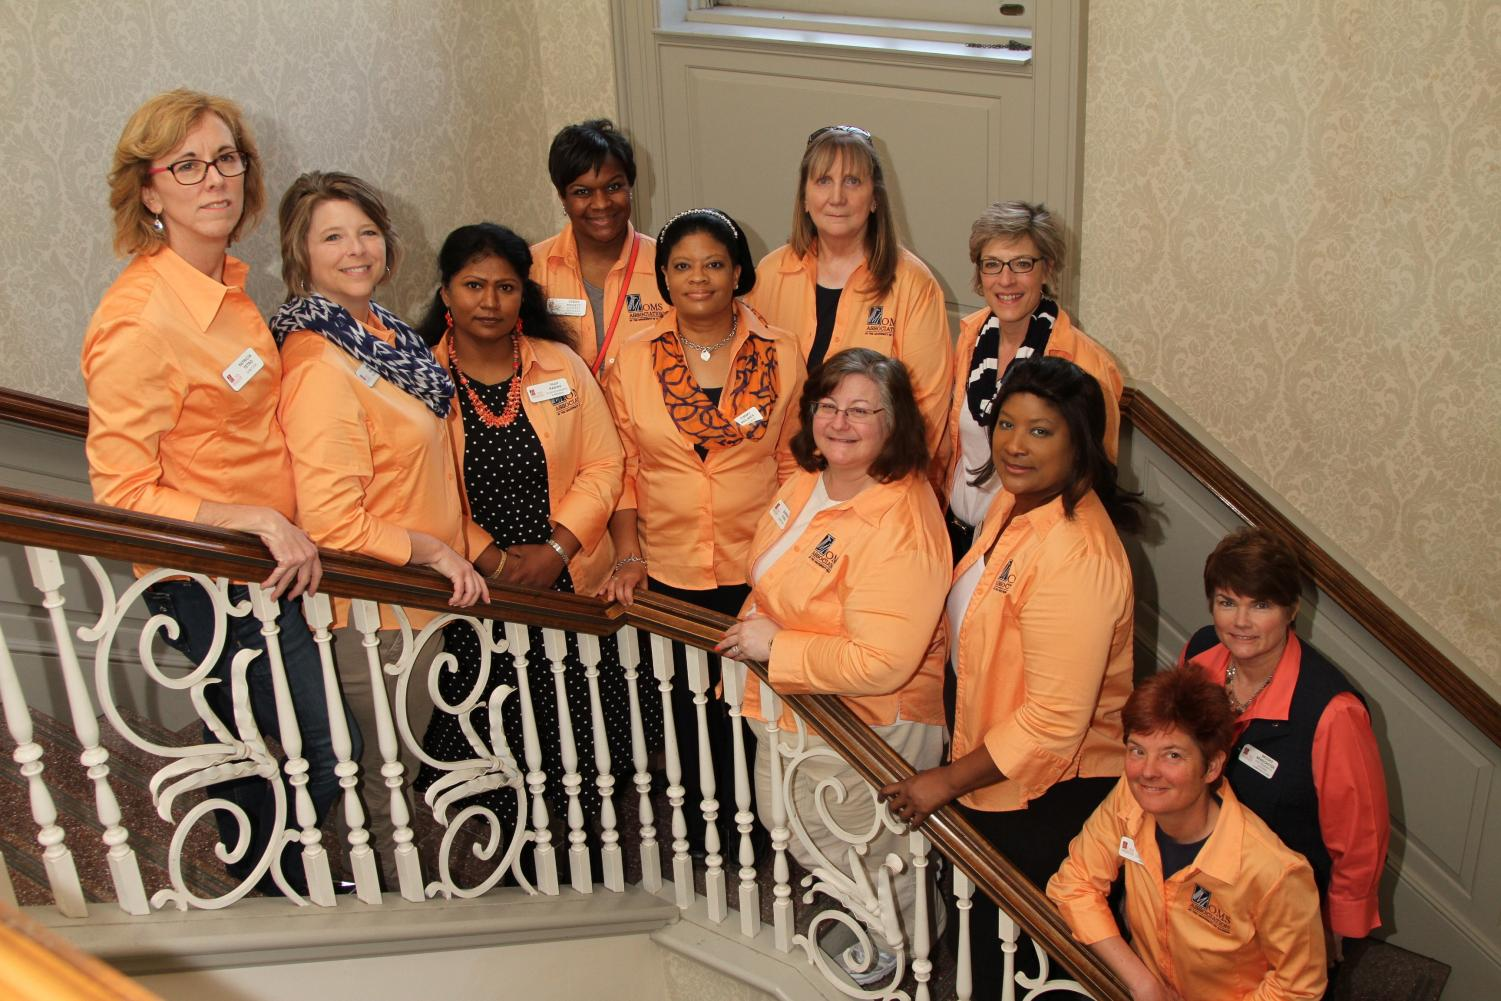 Members of the Moms Association pose in the Union in their group shirts.